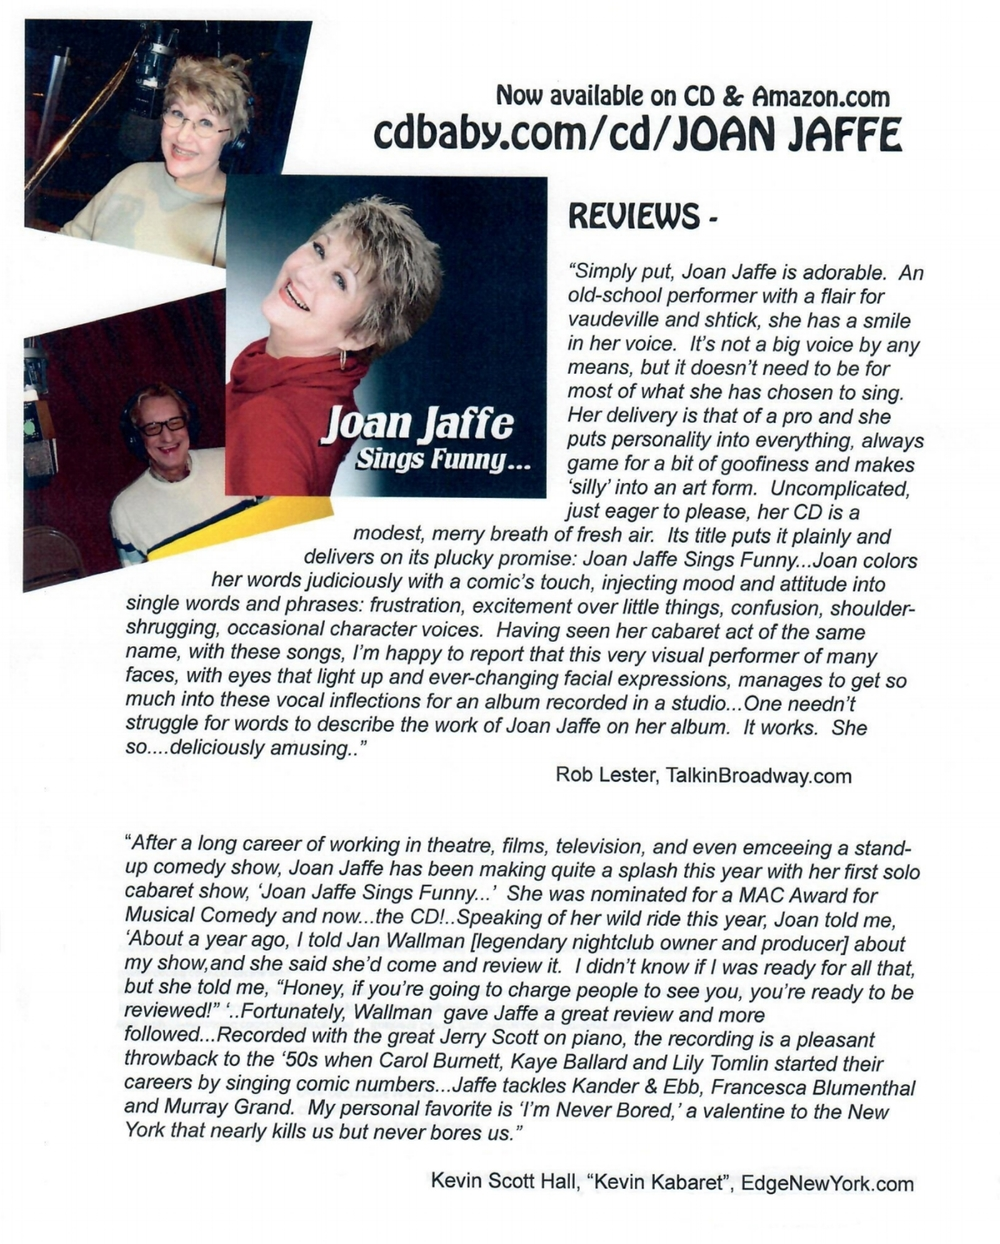 joan jaffe sings funny.....     is available at  cdbaby.com  amazon    itunes                                                                                           or go directly to  cdbaby.com/m/cd/joanjaffe